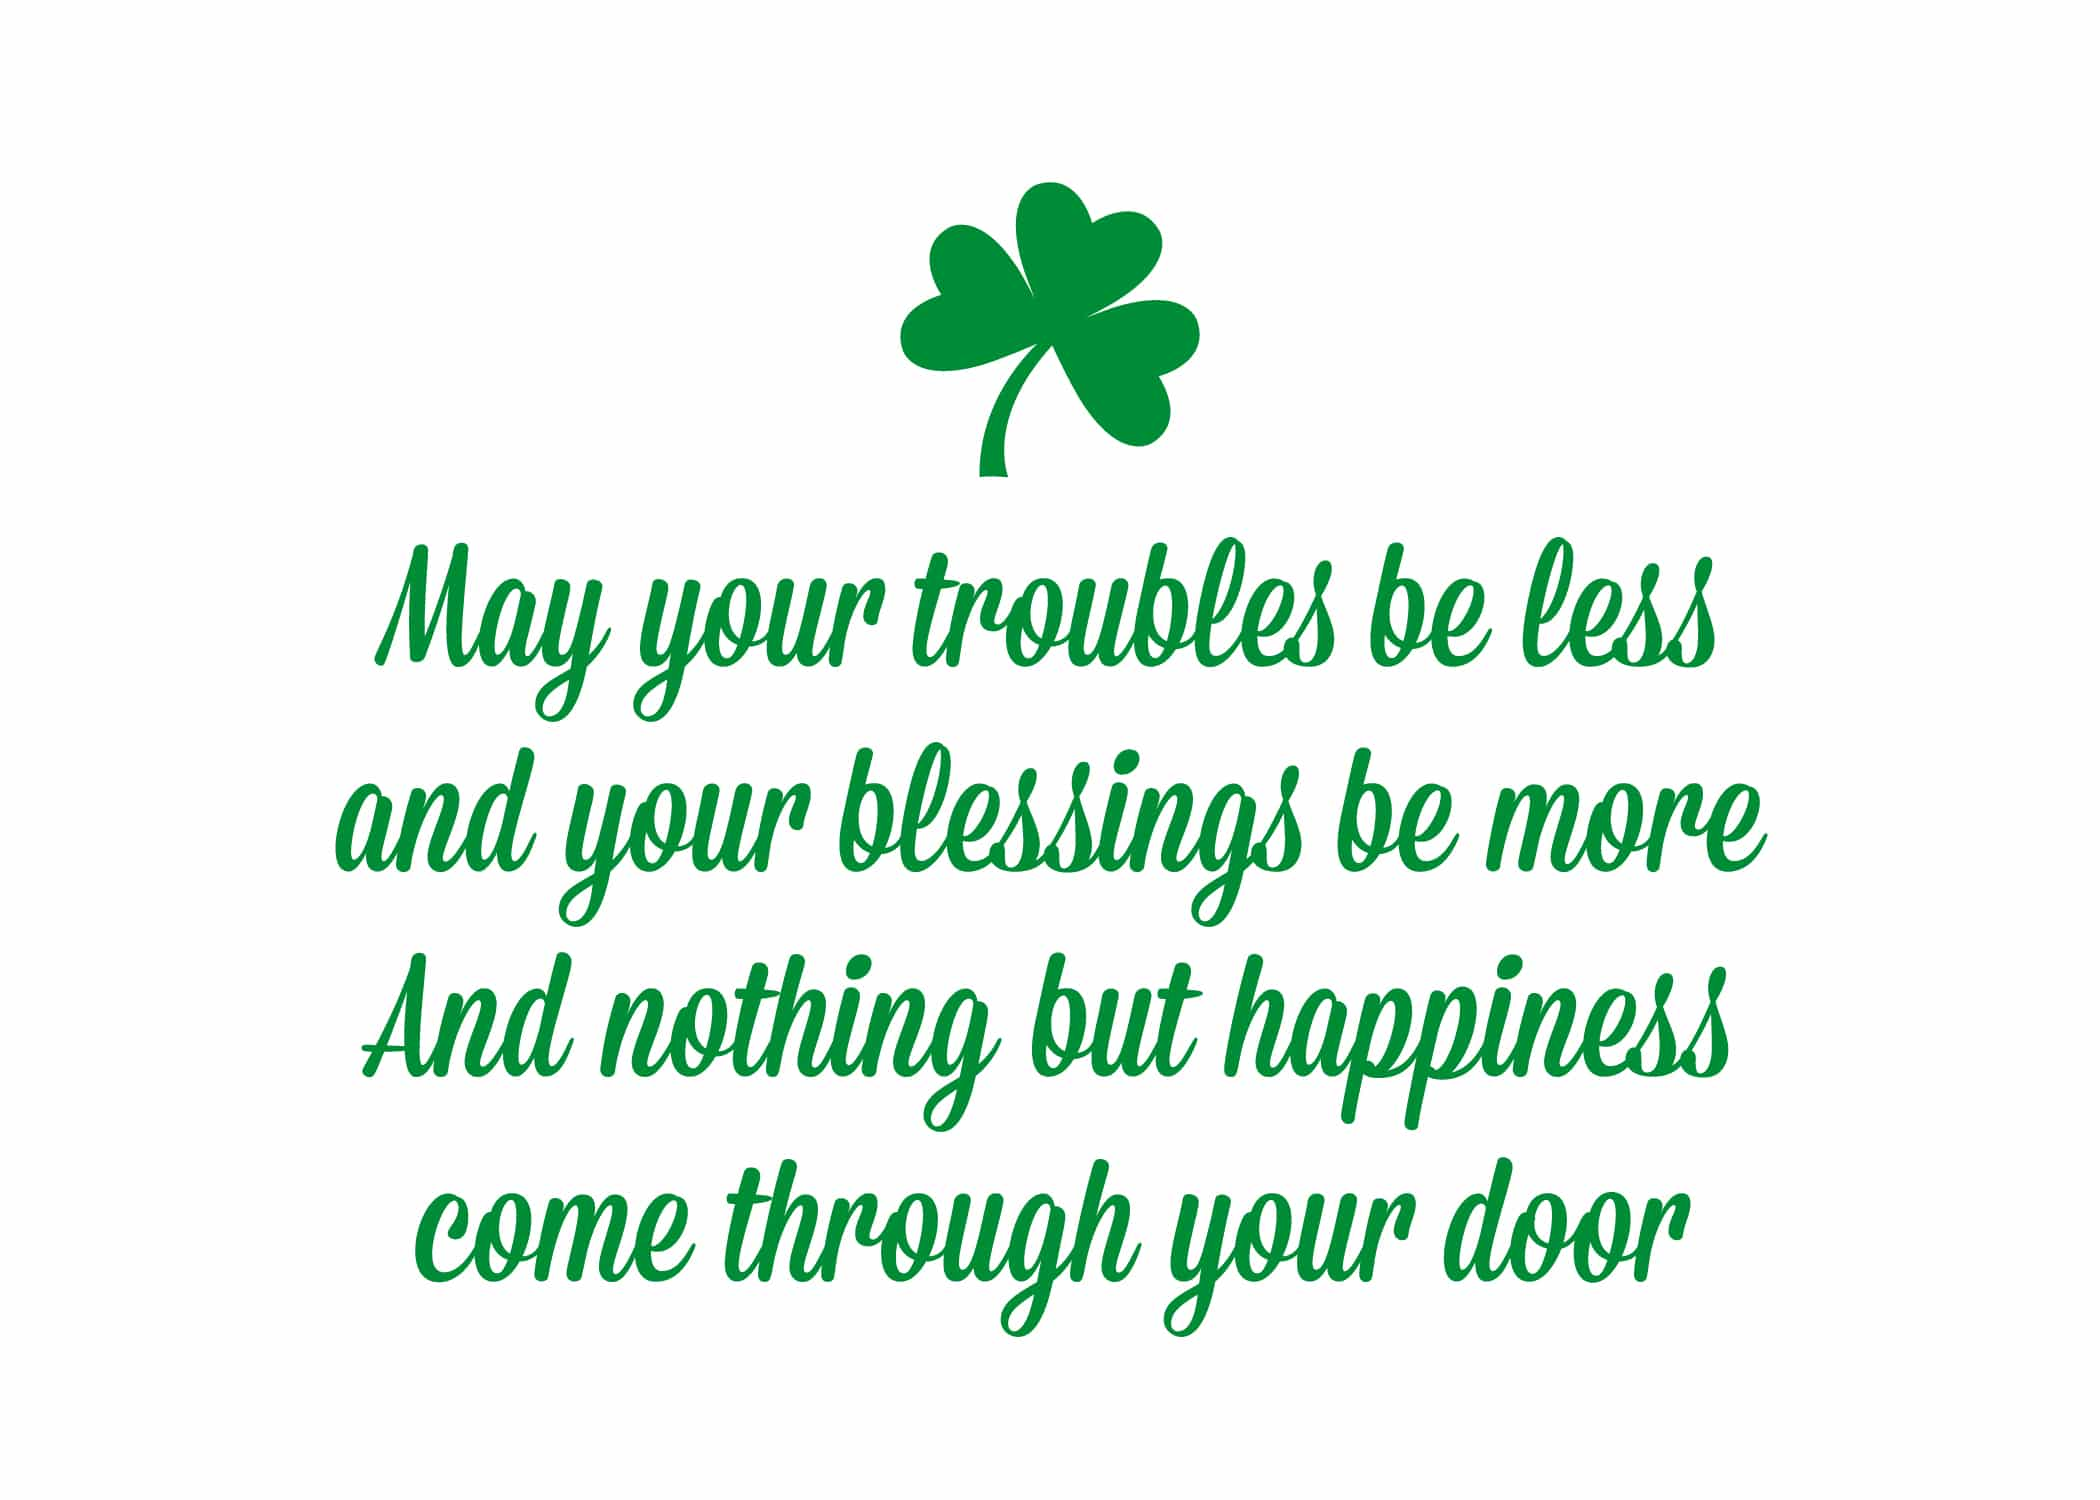 St Patrick's Day Quotes Proverbs